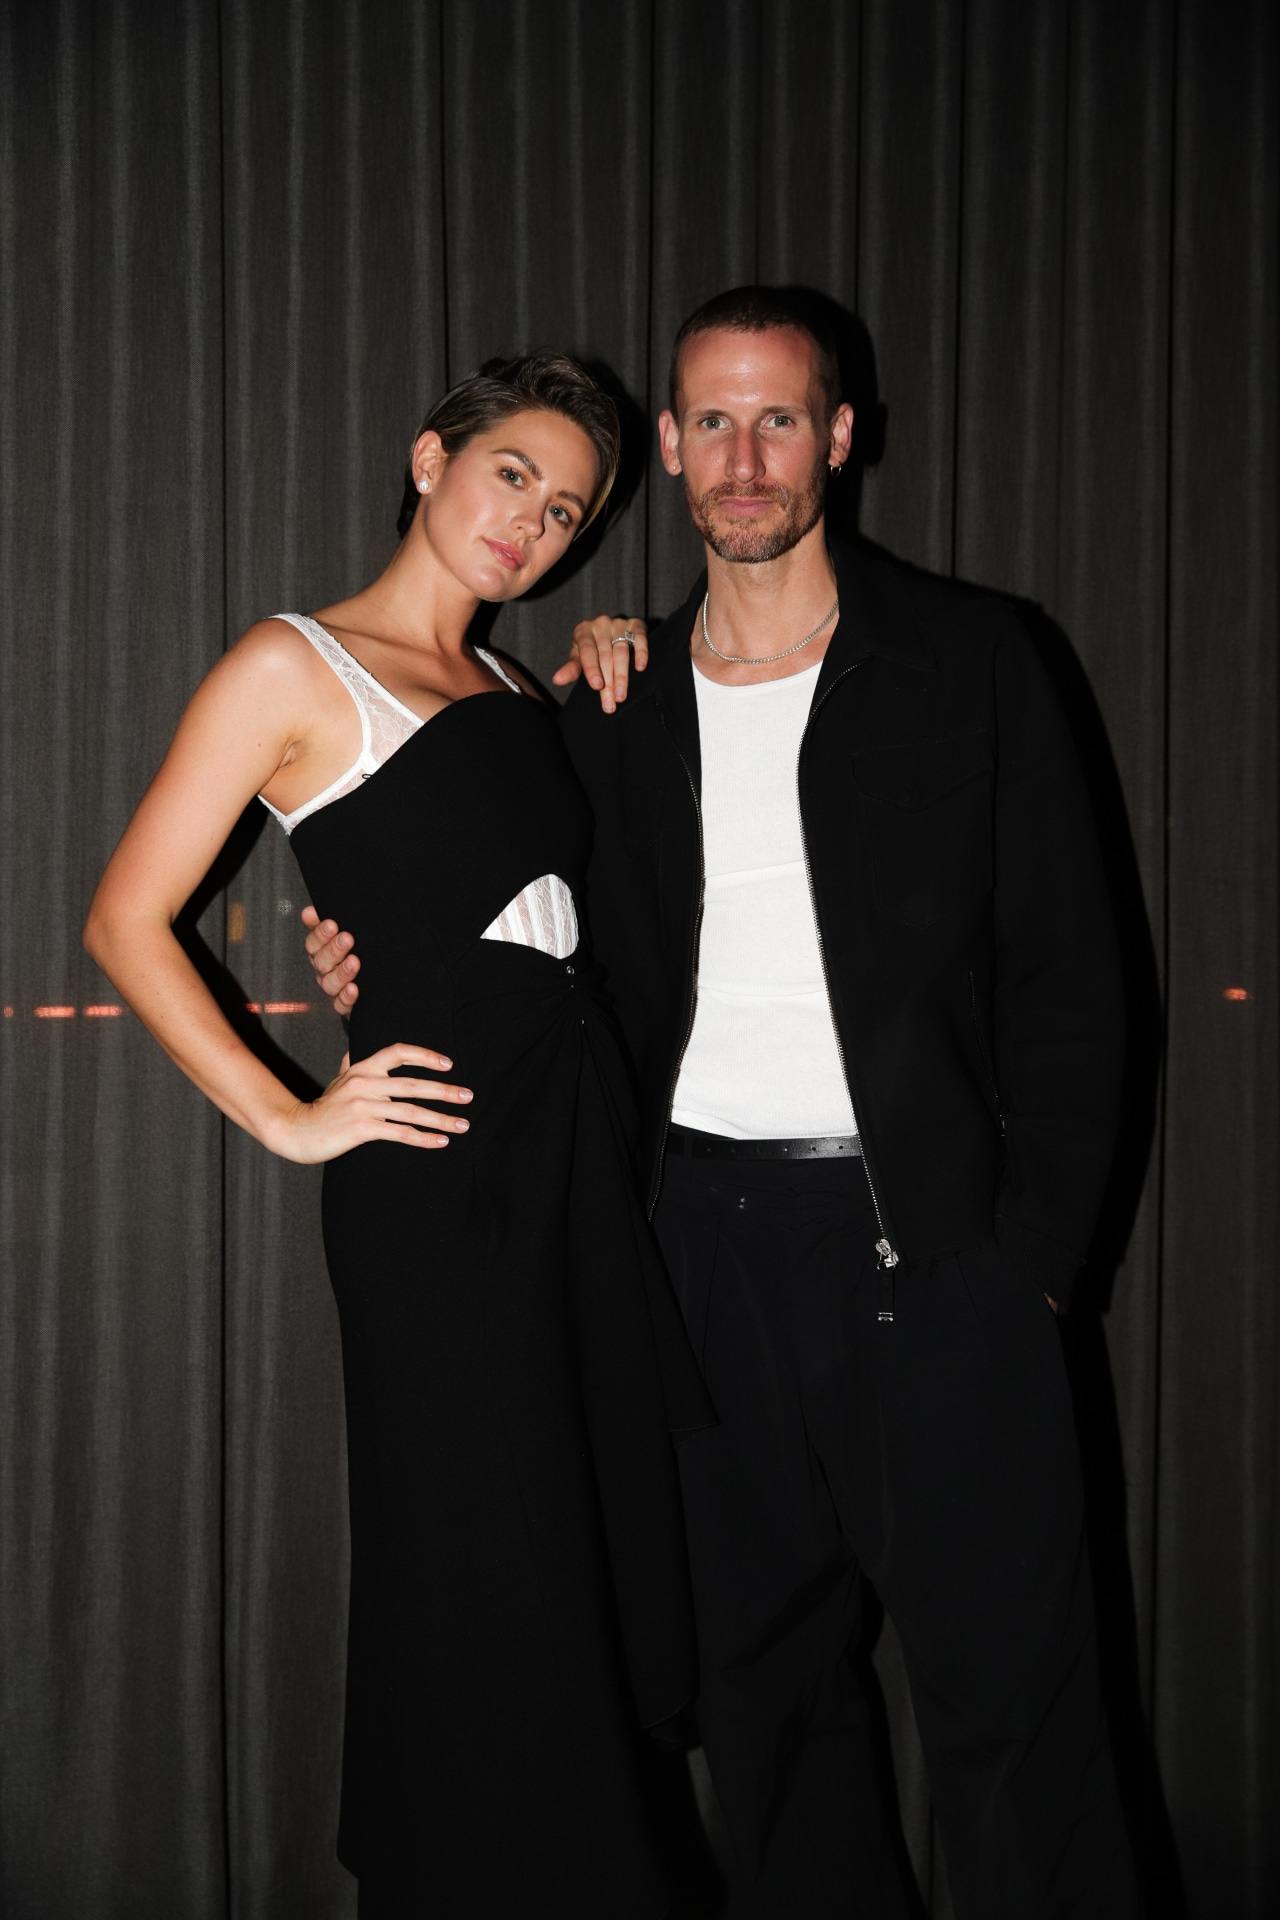 Inside an intimate MBFWA dinner hosted by Dion Lee